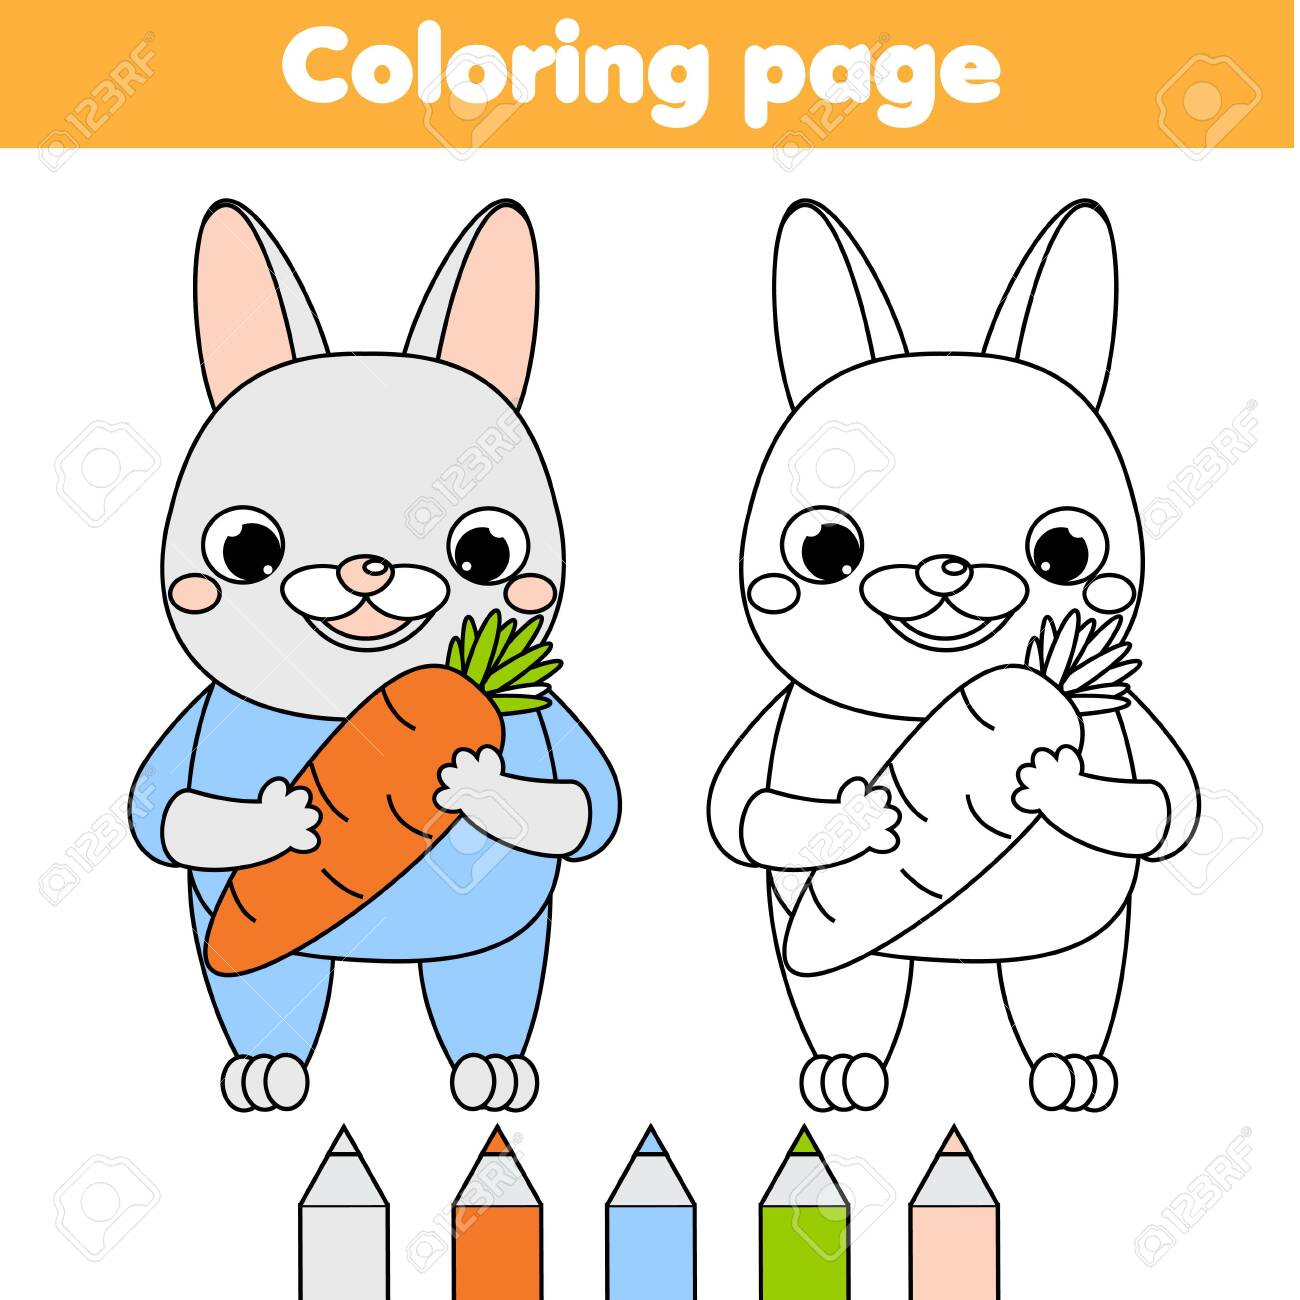 Cartoons Coloring Pages - GetColoringPages.com | 1300x1300